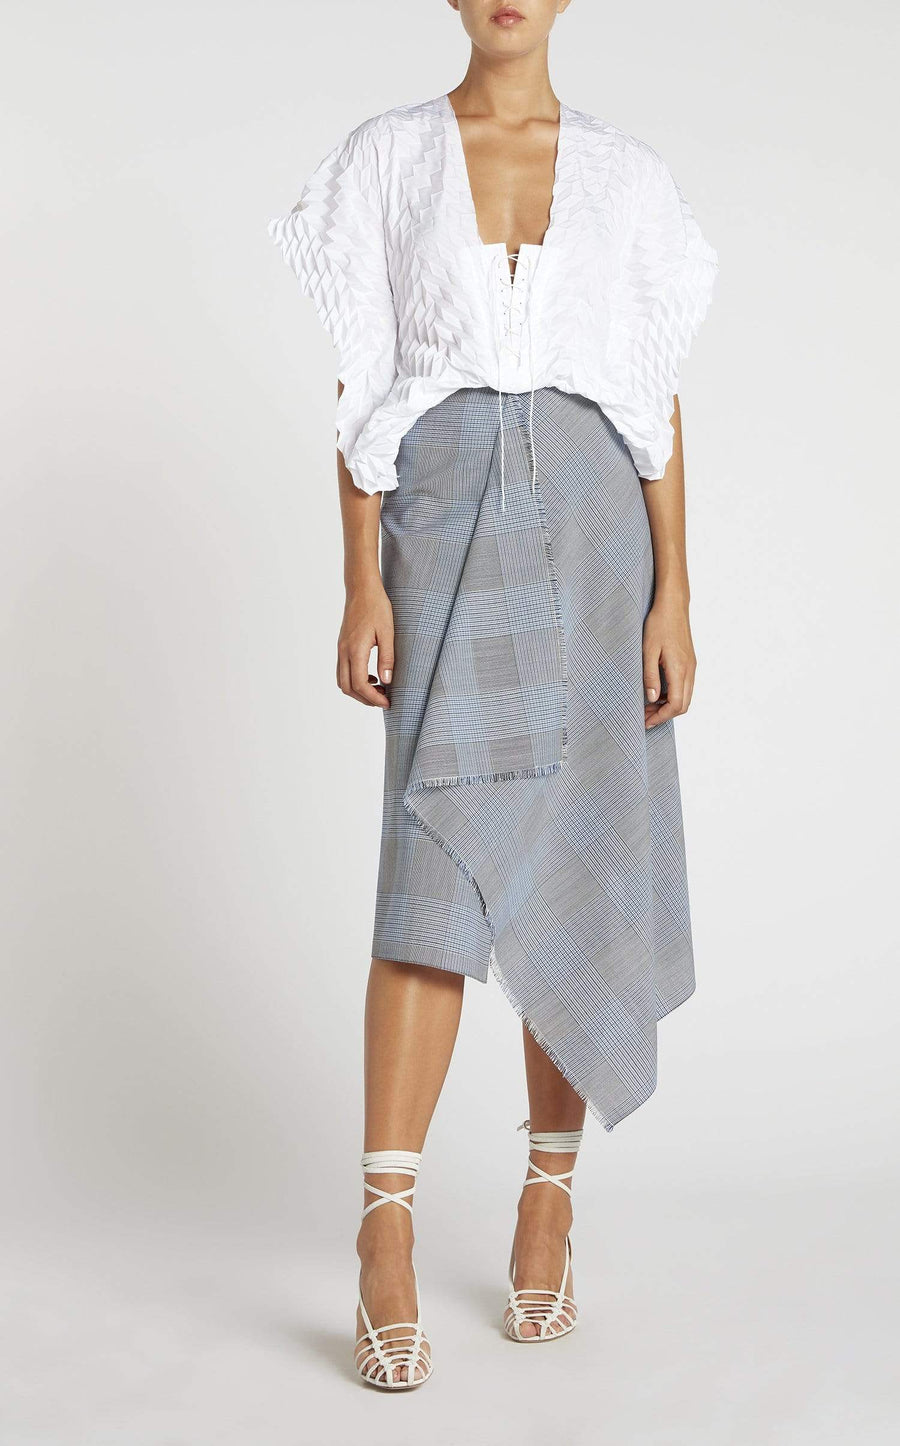 Panama Skirt In Navy from Roland Mouret